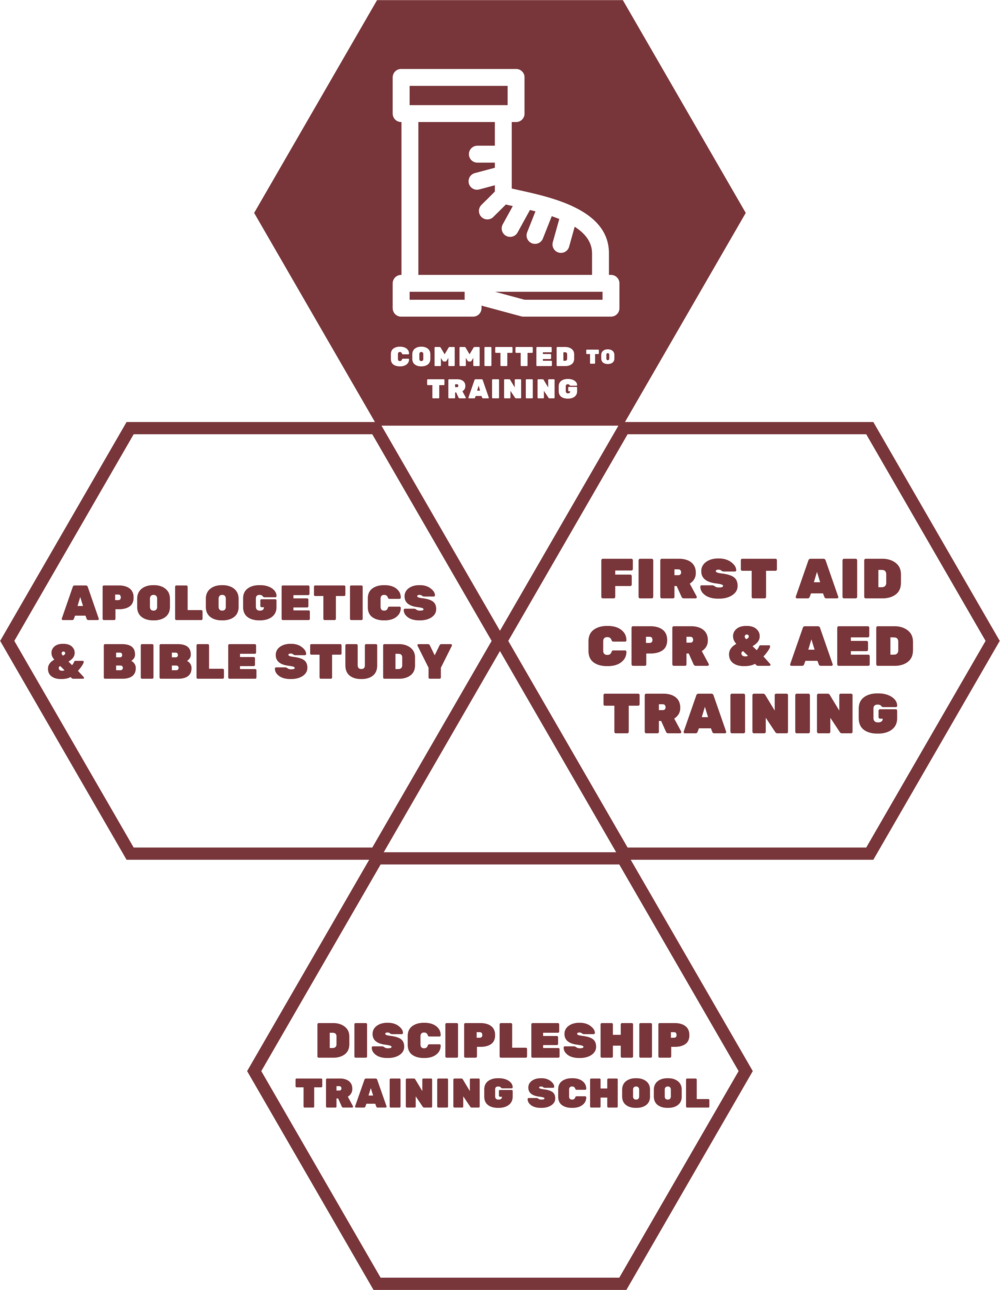 Committed to Training - As our primary program is the DTS, we are committed to training and sending young people to the nations. Weekly bible teaching and apologetics ensure that students and staff alike are constantly in a posture of learning and growing.We also offer First Aid, CPR and AED training at our base. Our Community Development department aims to develop sustainable initiatives, such as aquaponics, that can be taught in the nations.